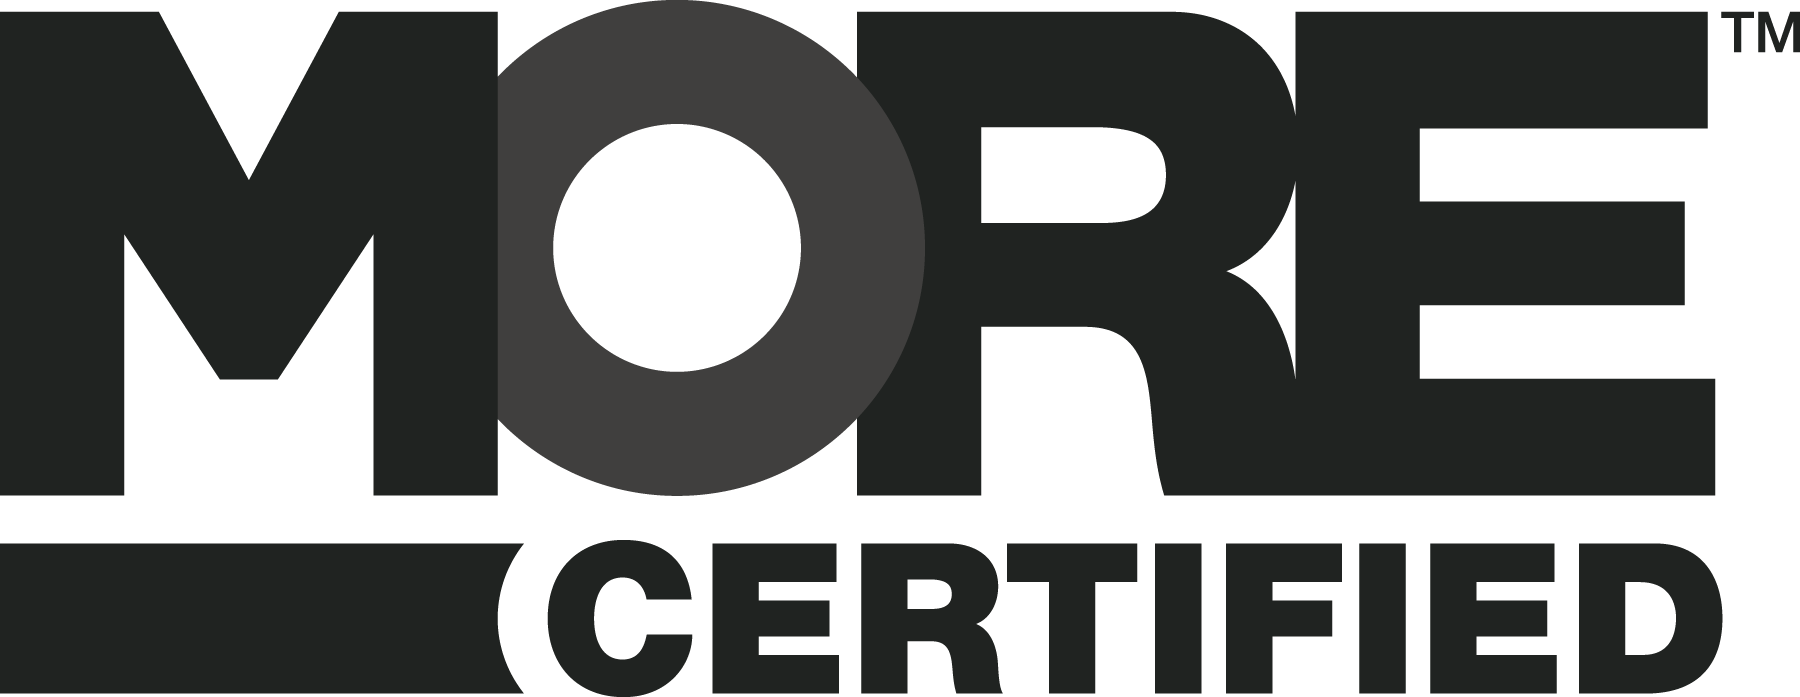 Q4i MORE Certified Logo TM